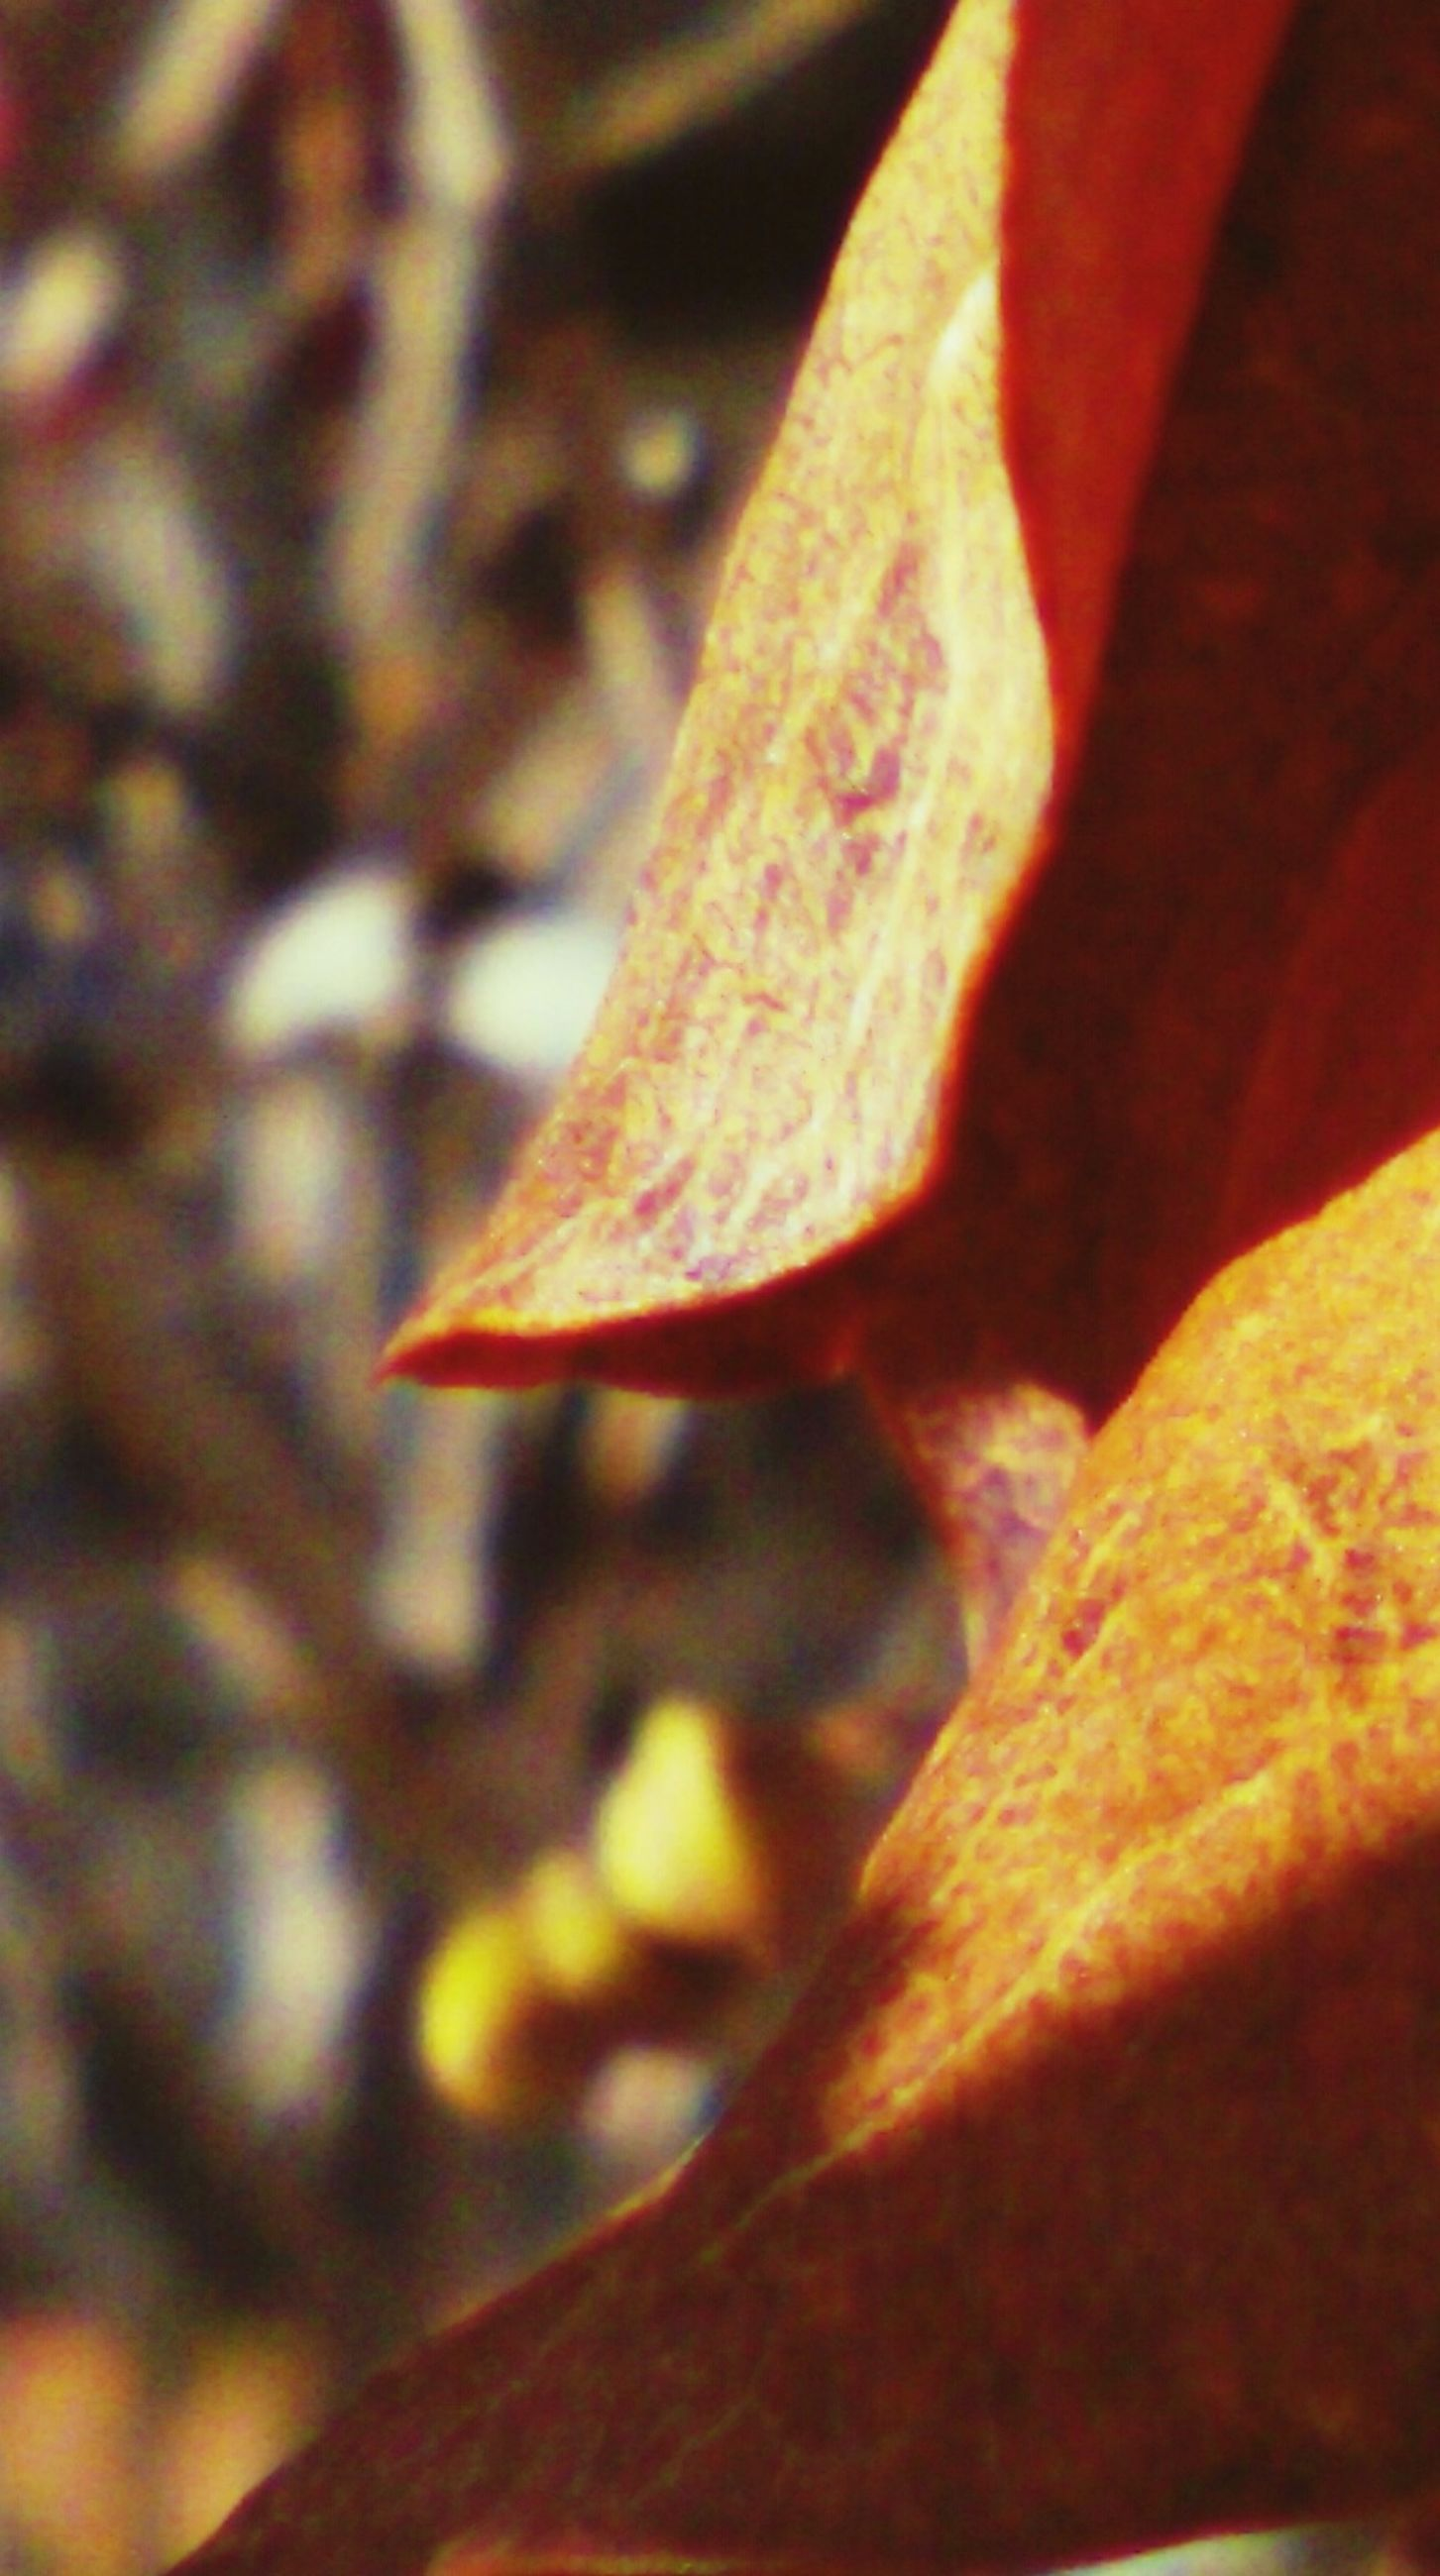 leaf, close-up, focus on foreground, autumn, nature, change, leaf vein, natural pattern, selective focus, growth, dry, leaves, season, beauty in nature, outdoors, tranquility, sunlight, day, no people, fragility